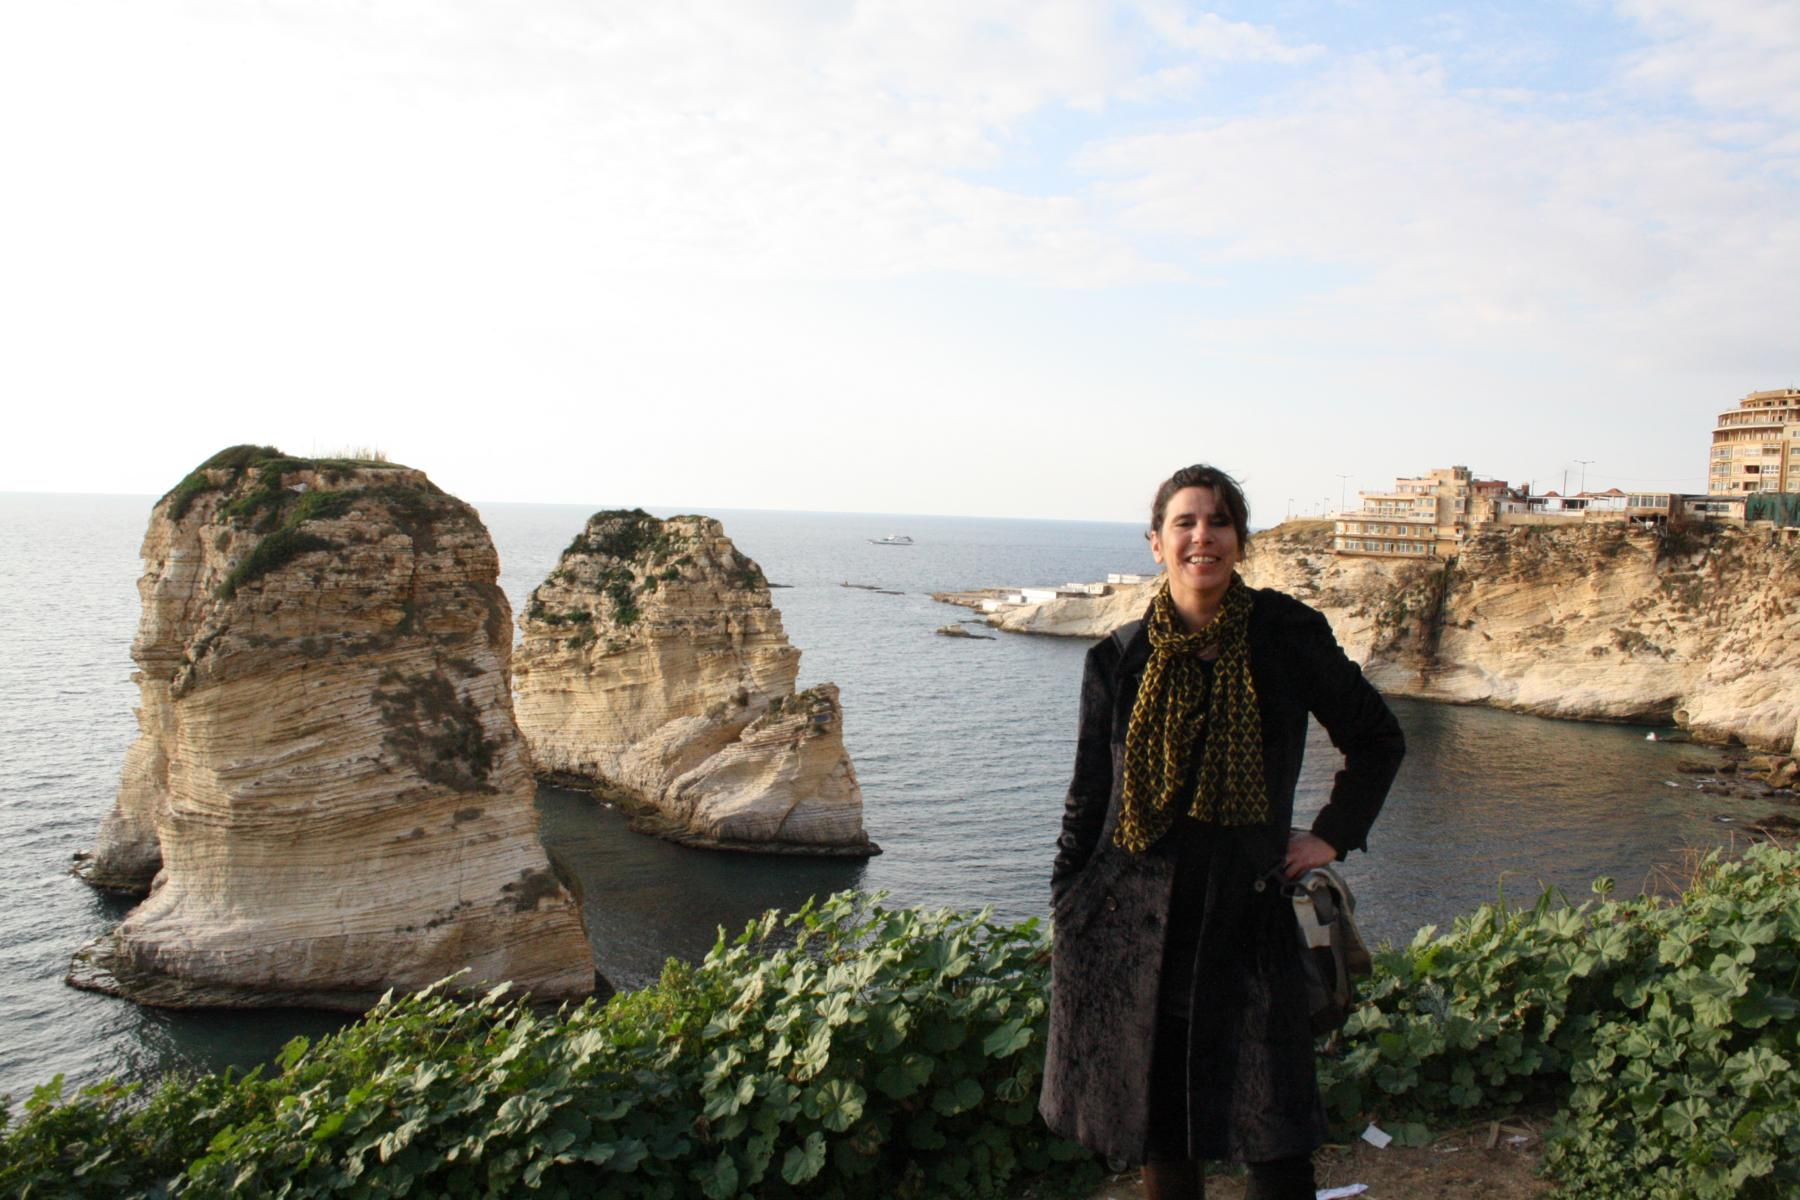 Carte Blanche: On the road in Beirut